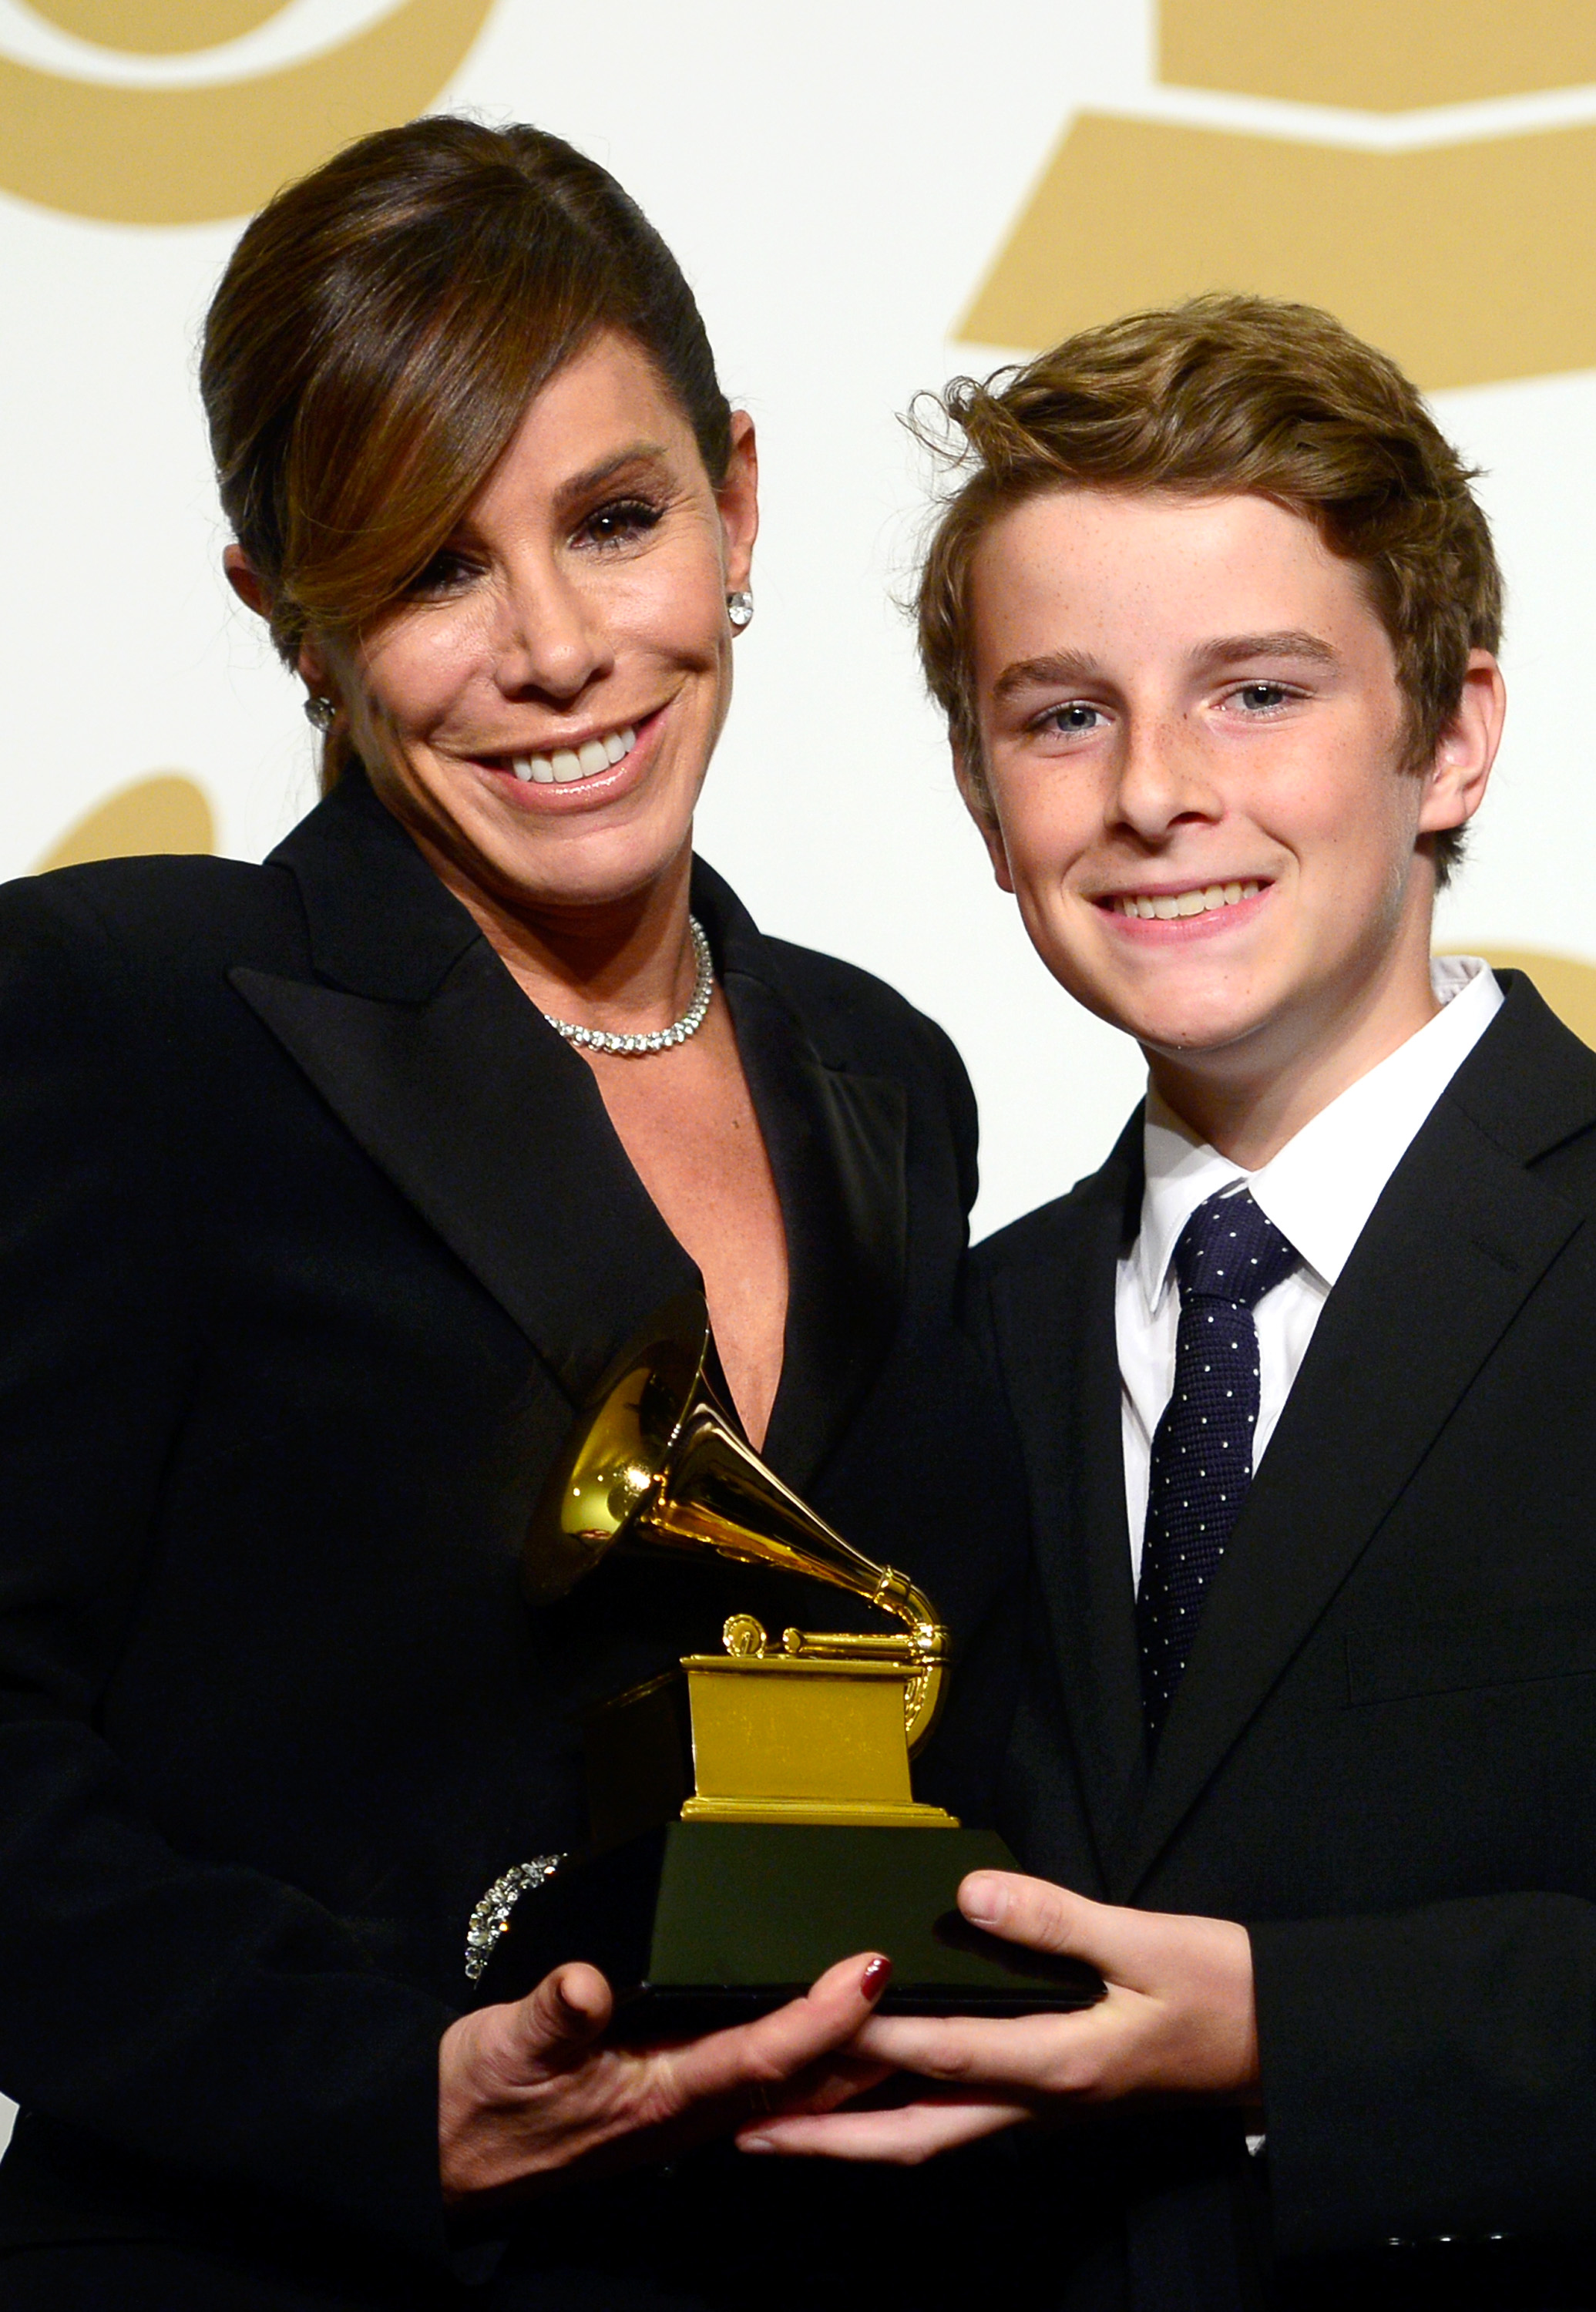 Melissa Rivers (L) and son Cooper Endicott accept Best Spoken Word Album for 'Diary Of A Mad Diva' on behalf of Joan Rivers during The 57th Annual GRAMMY Awards on Feb. 8, 2015 in Los Angeles.